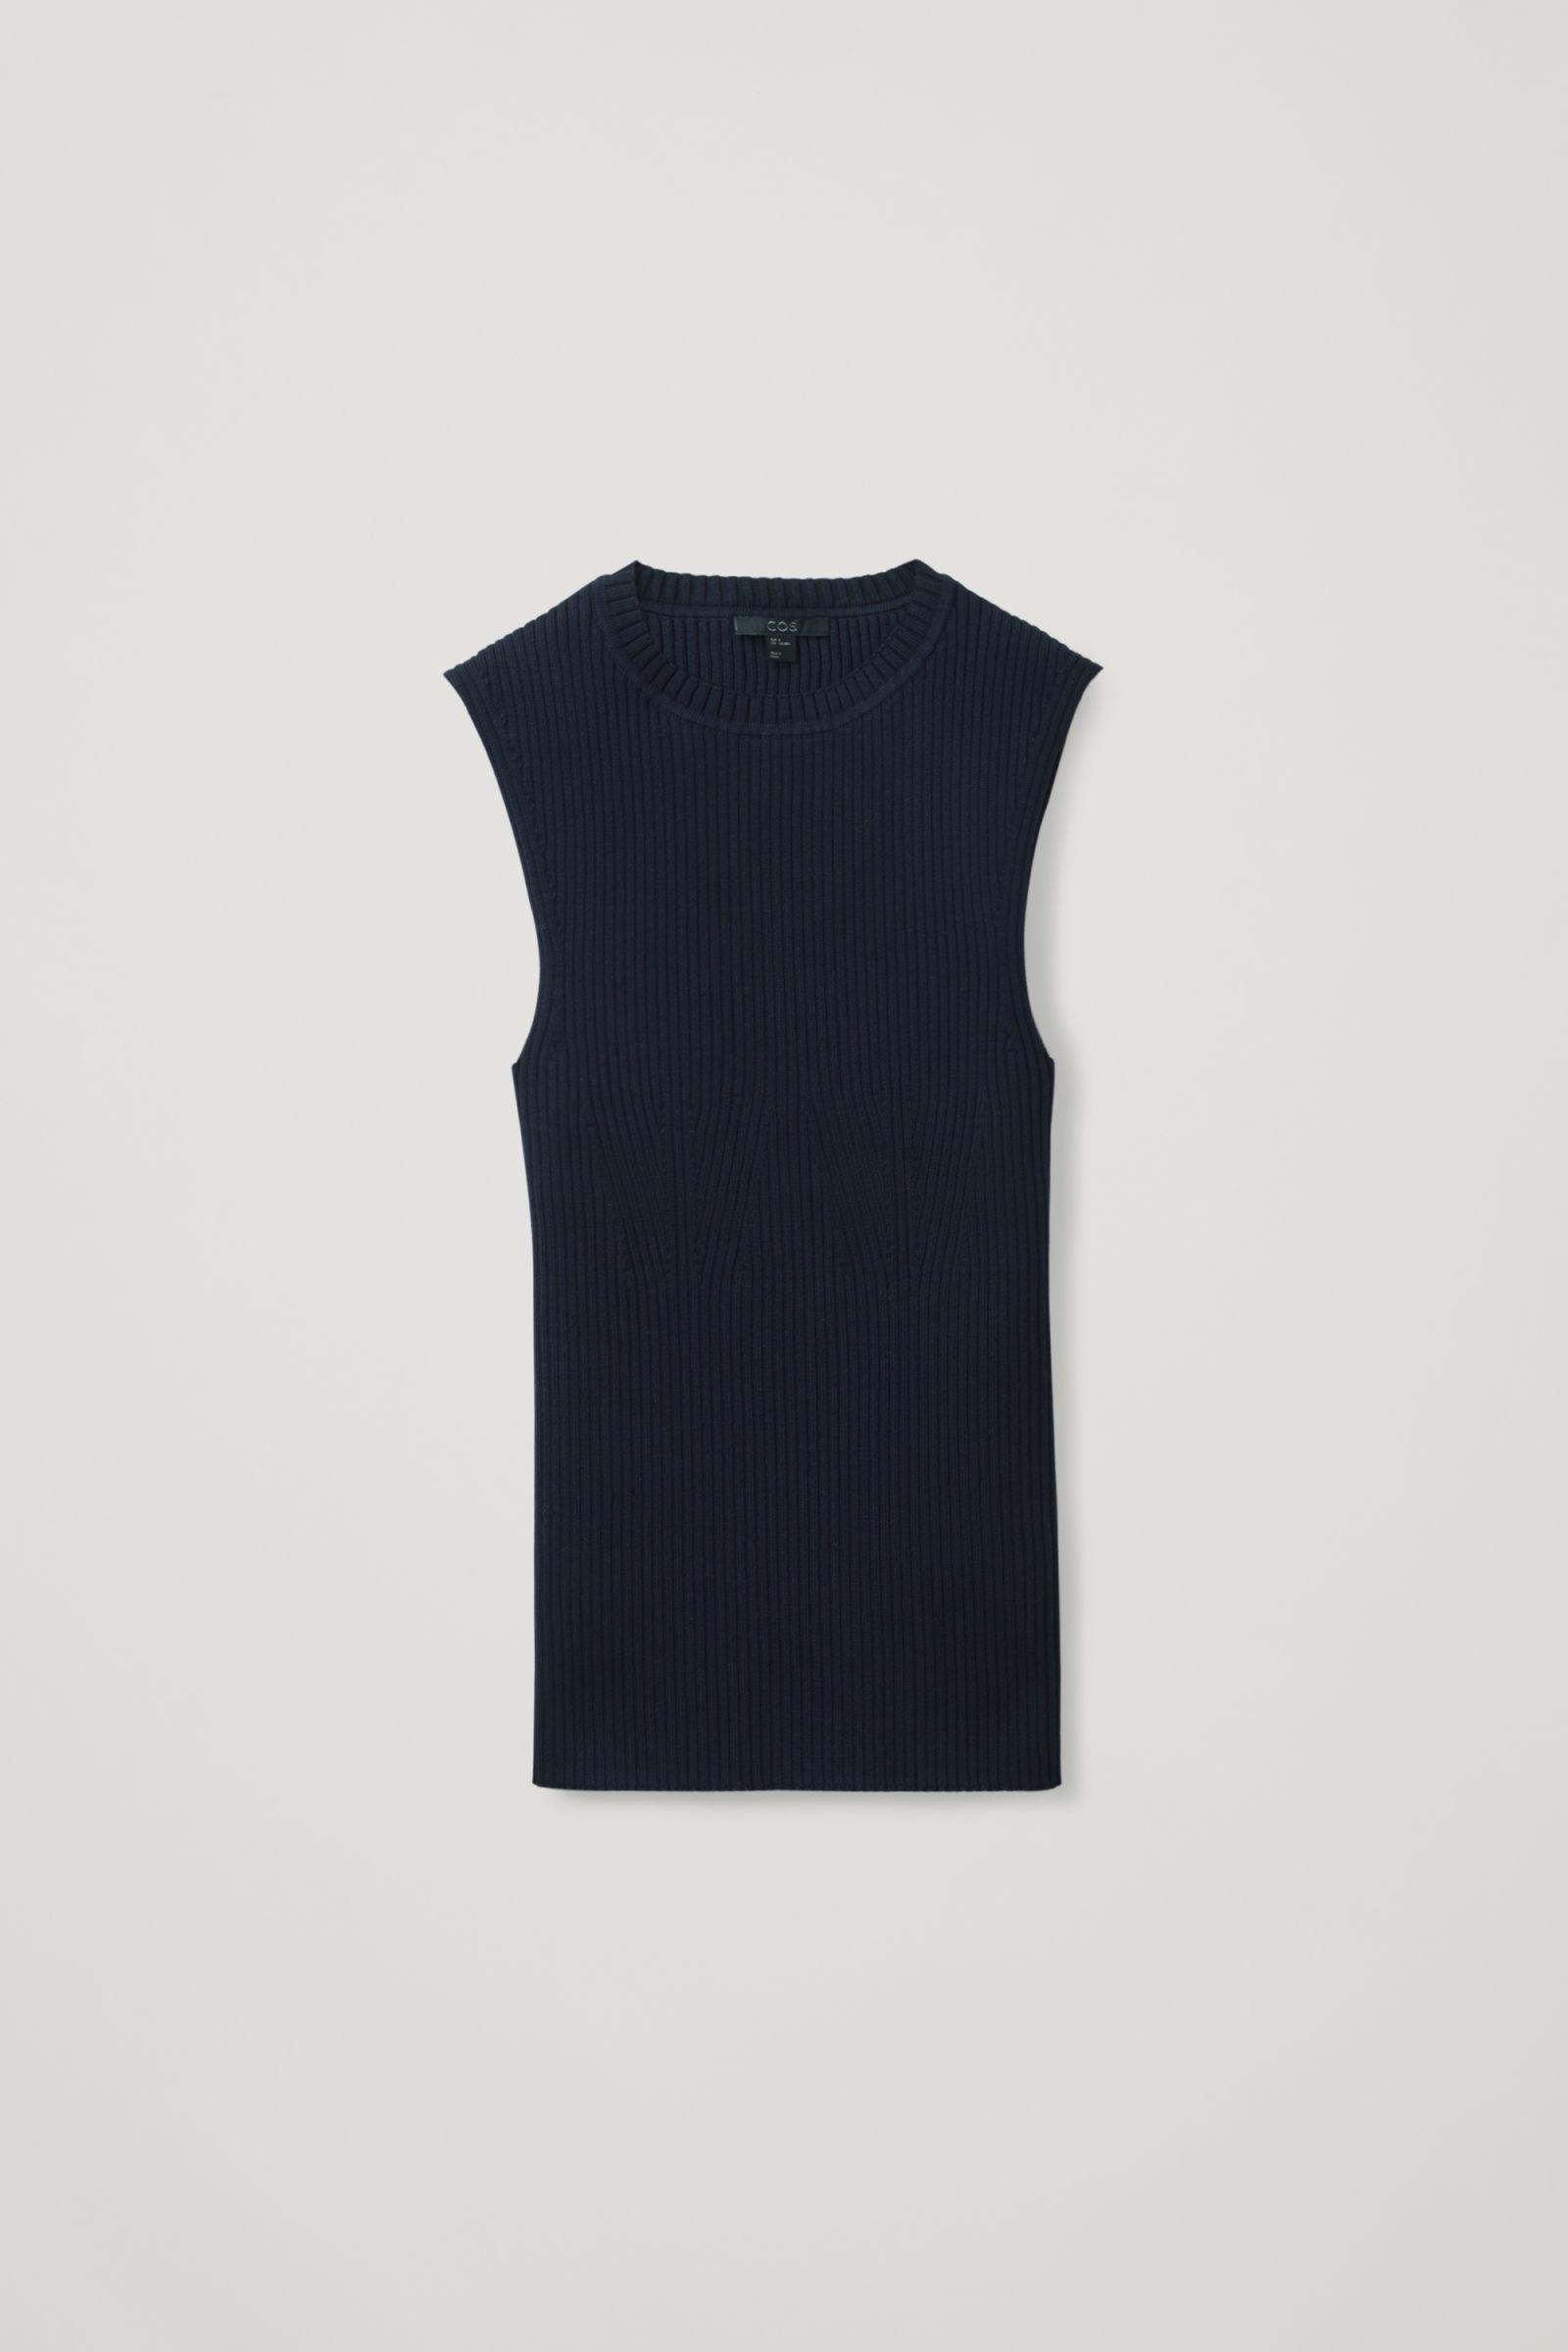 SLEEVELESS KNITTED TOP 5